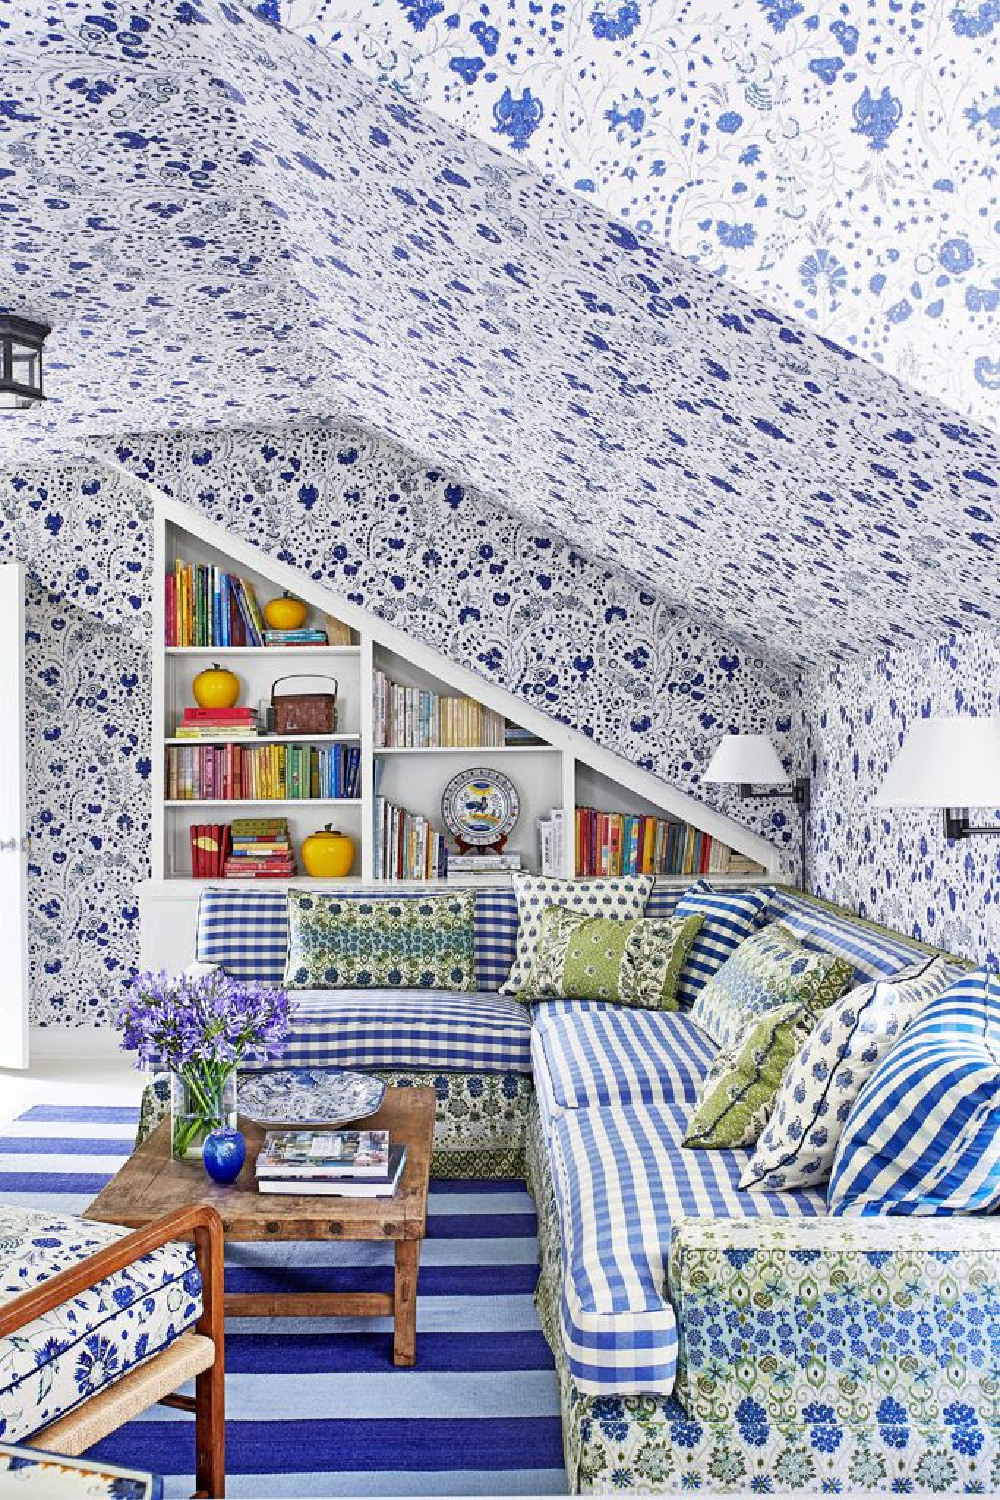 Beautiful mixed royal blue patterns of wallpaper and upholstery in a charming traditional space - design by Mark Sikes.